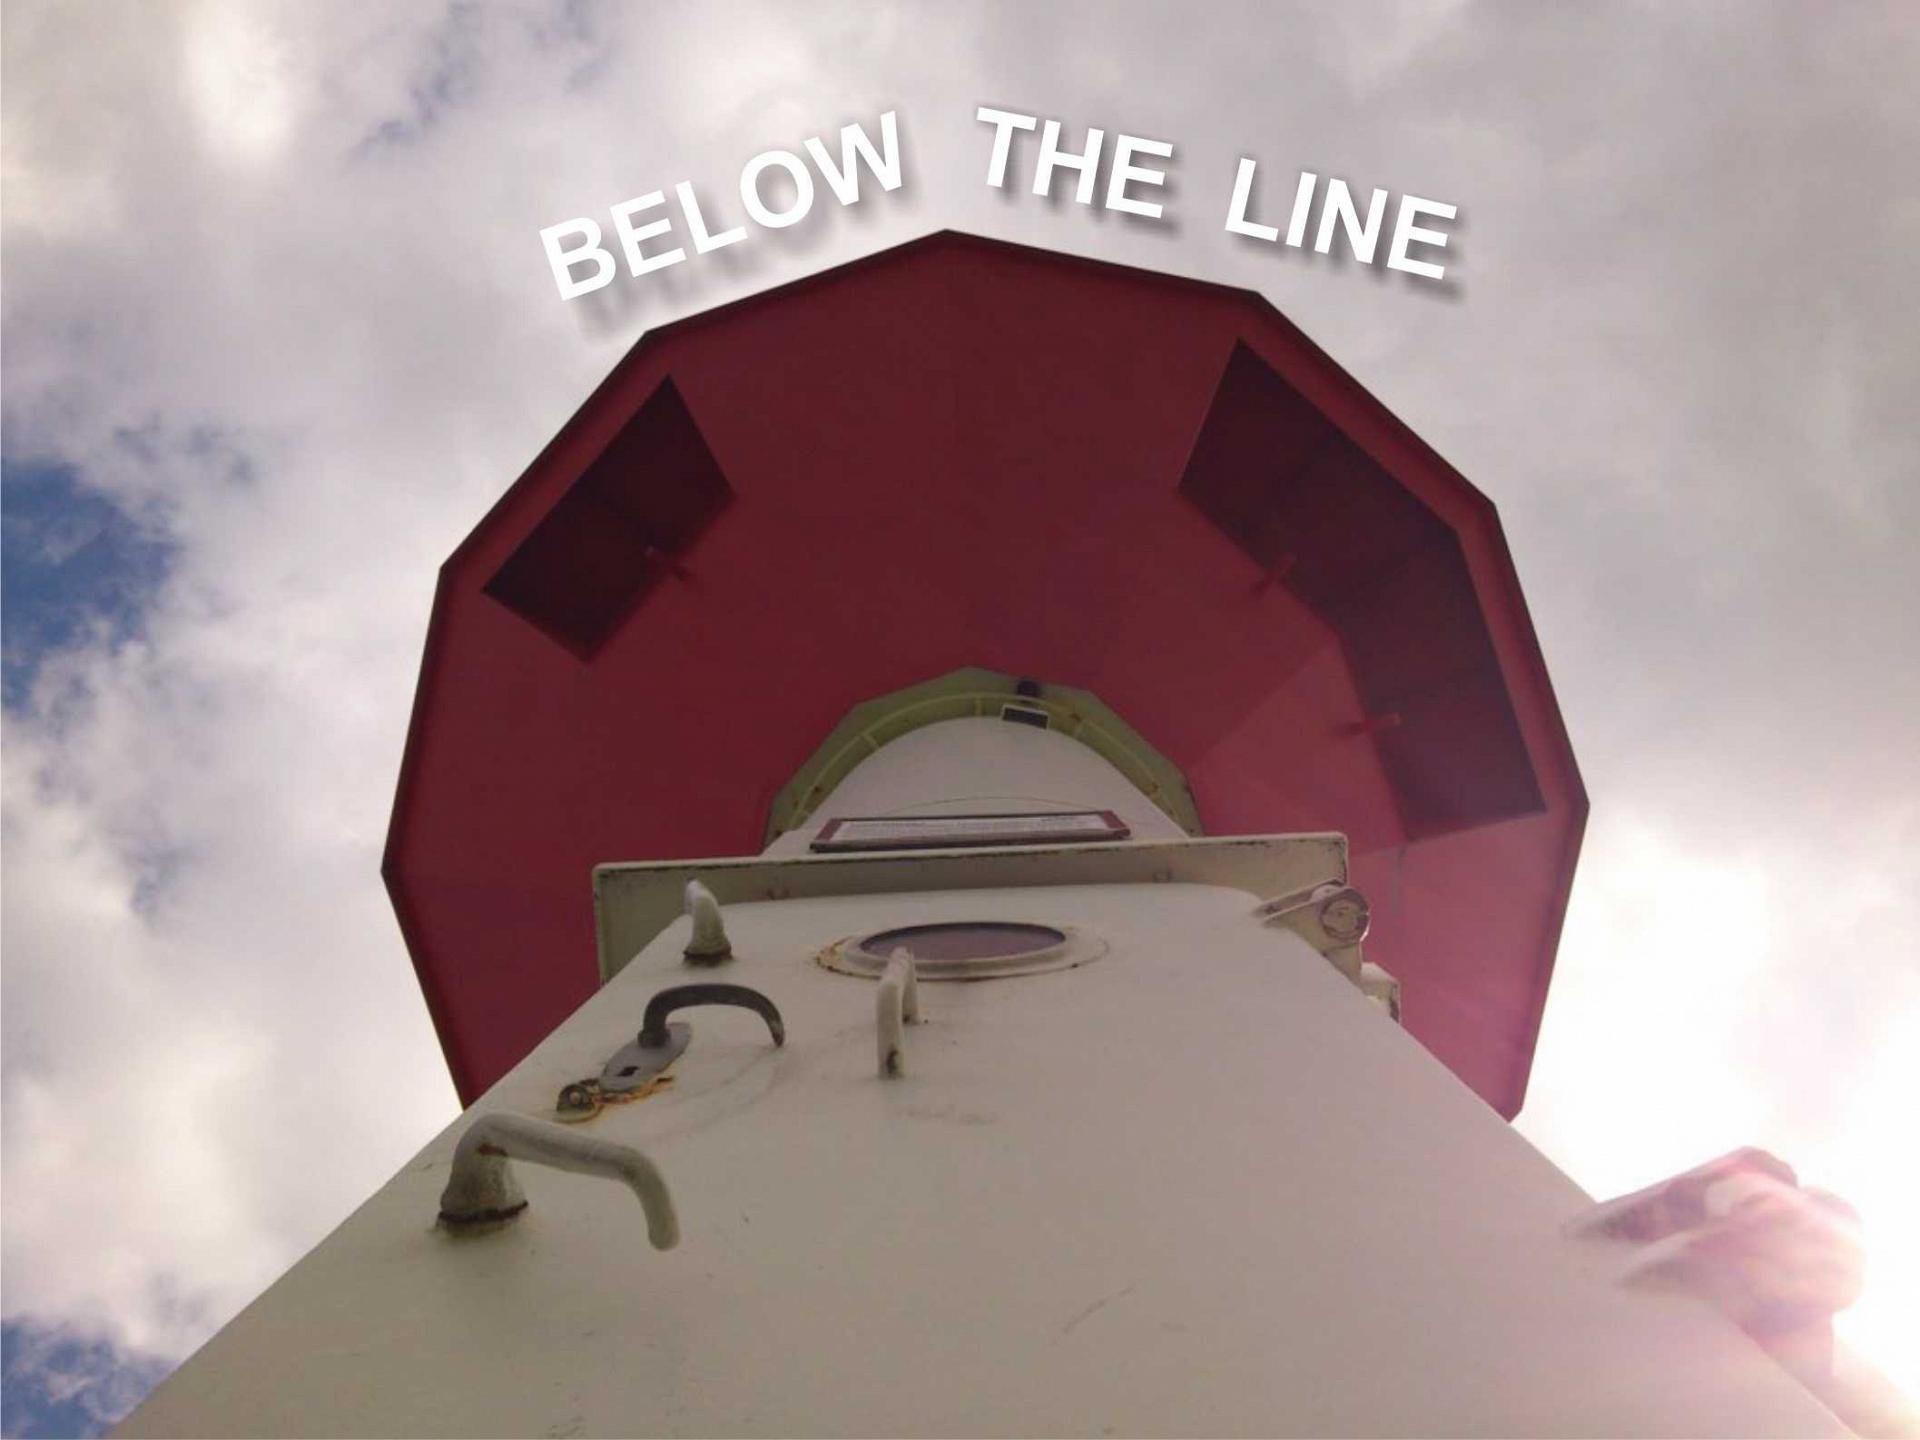 Unkoventionelle Werbung - Below the Line